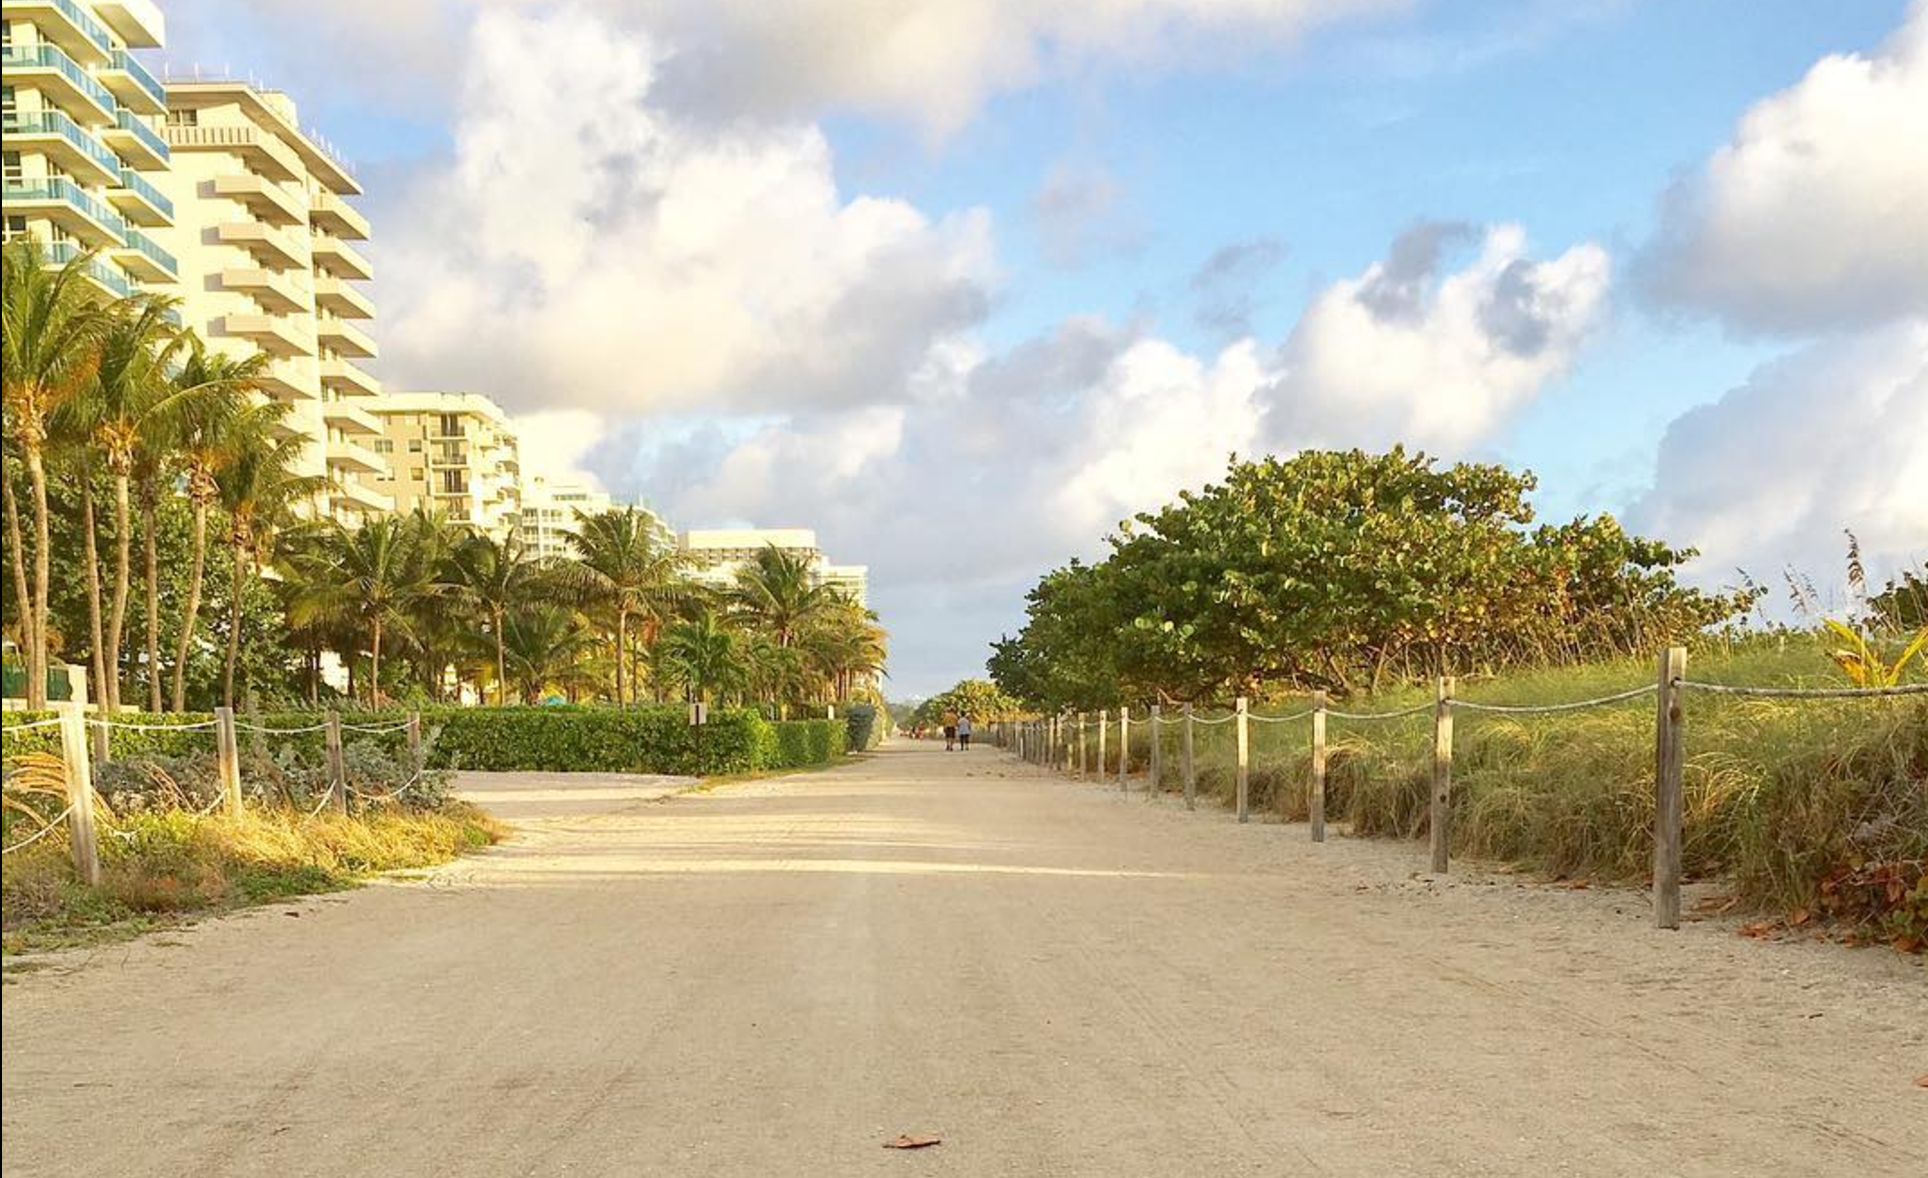 Just beyond the beach with buildings to the left and a lush divider to the right